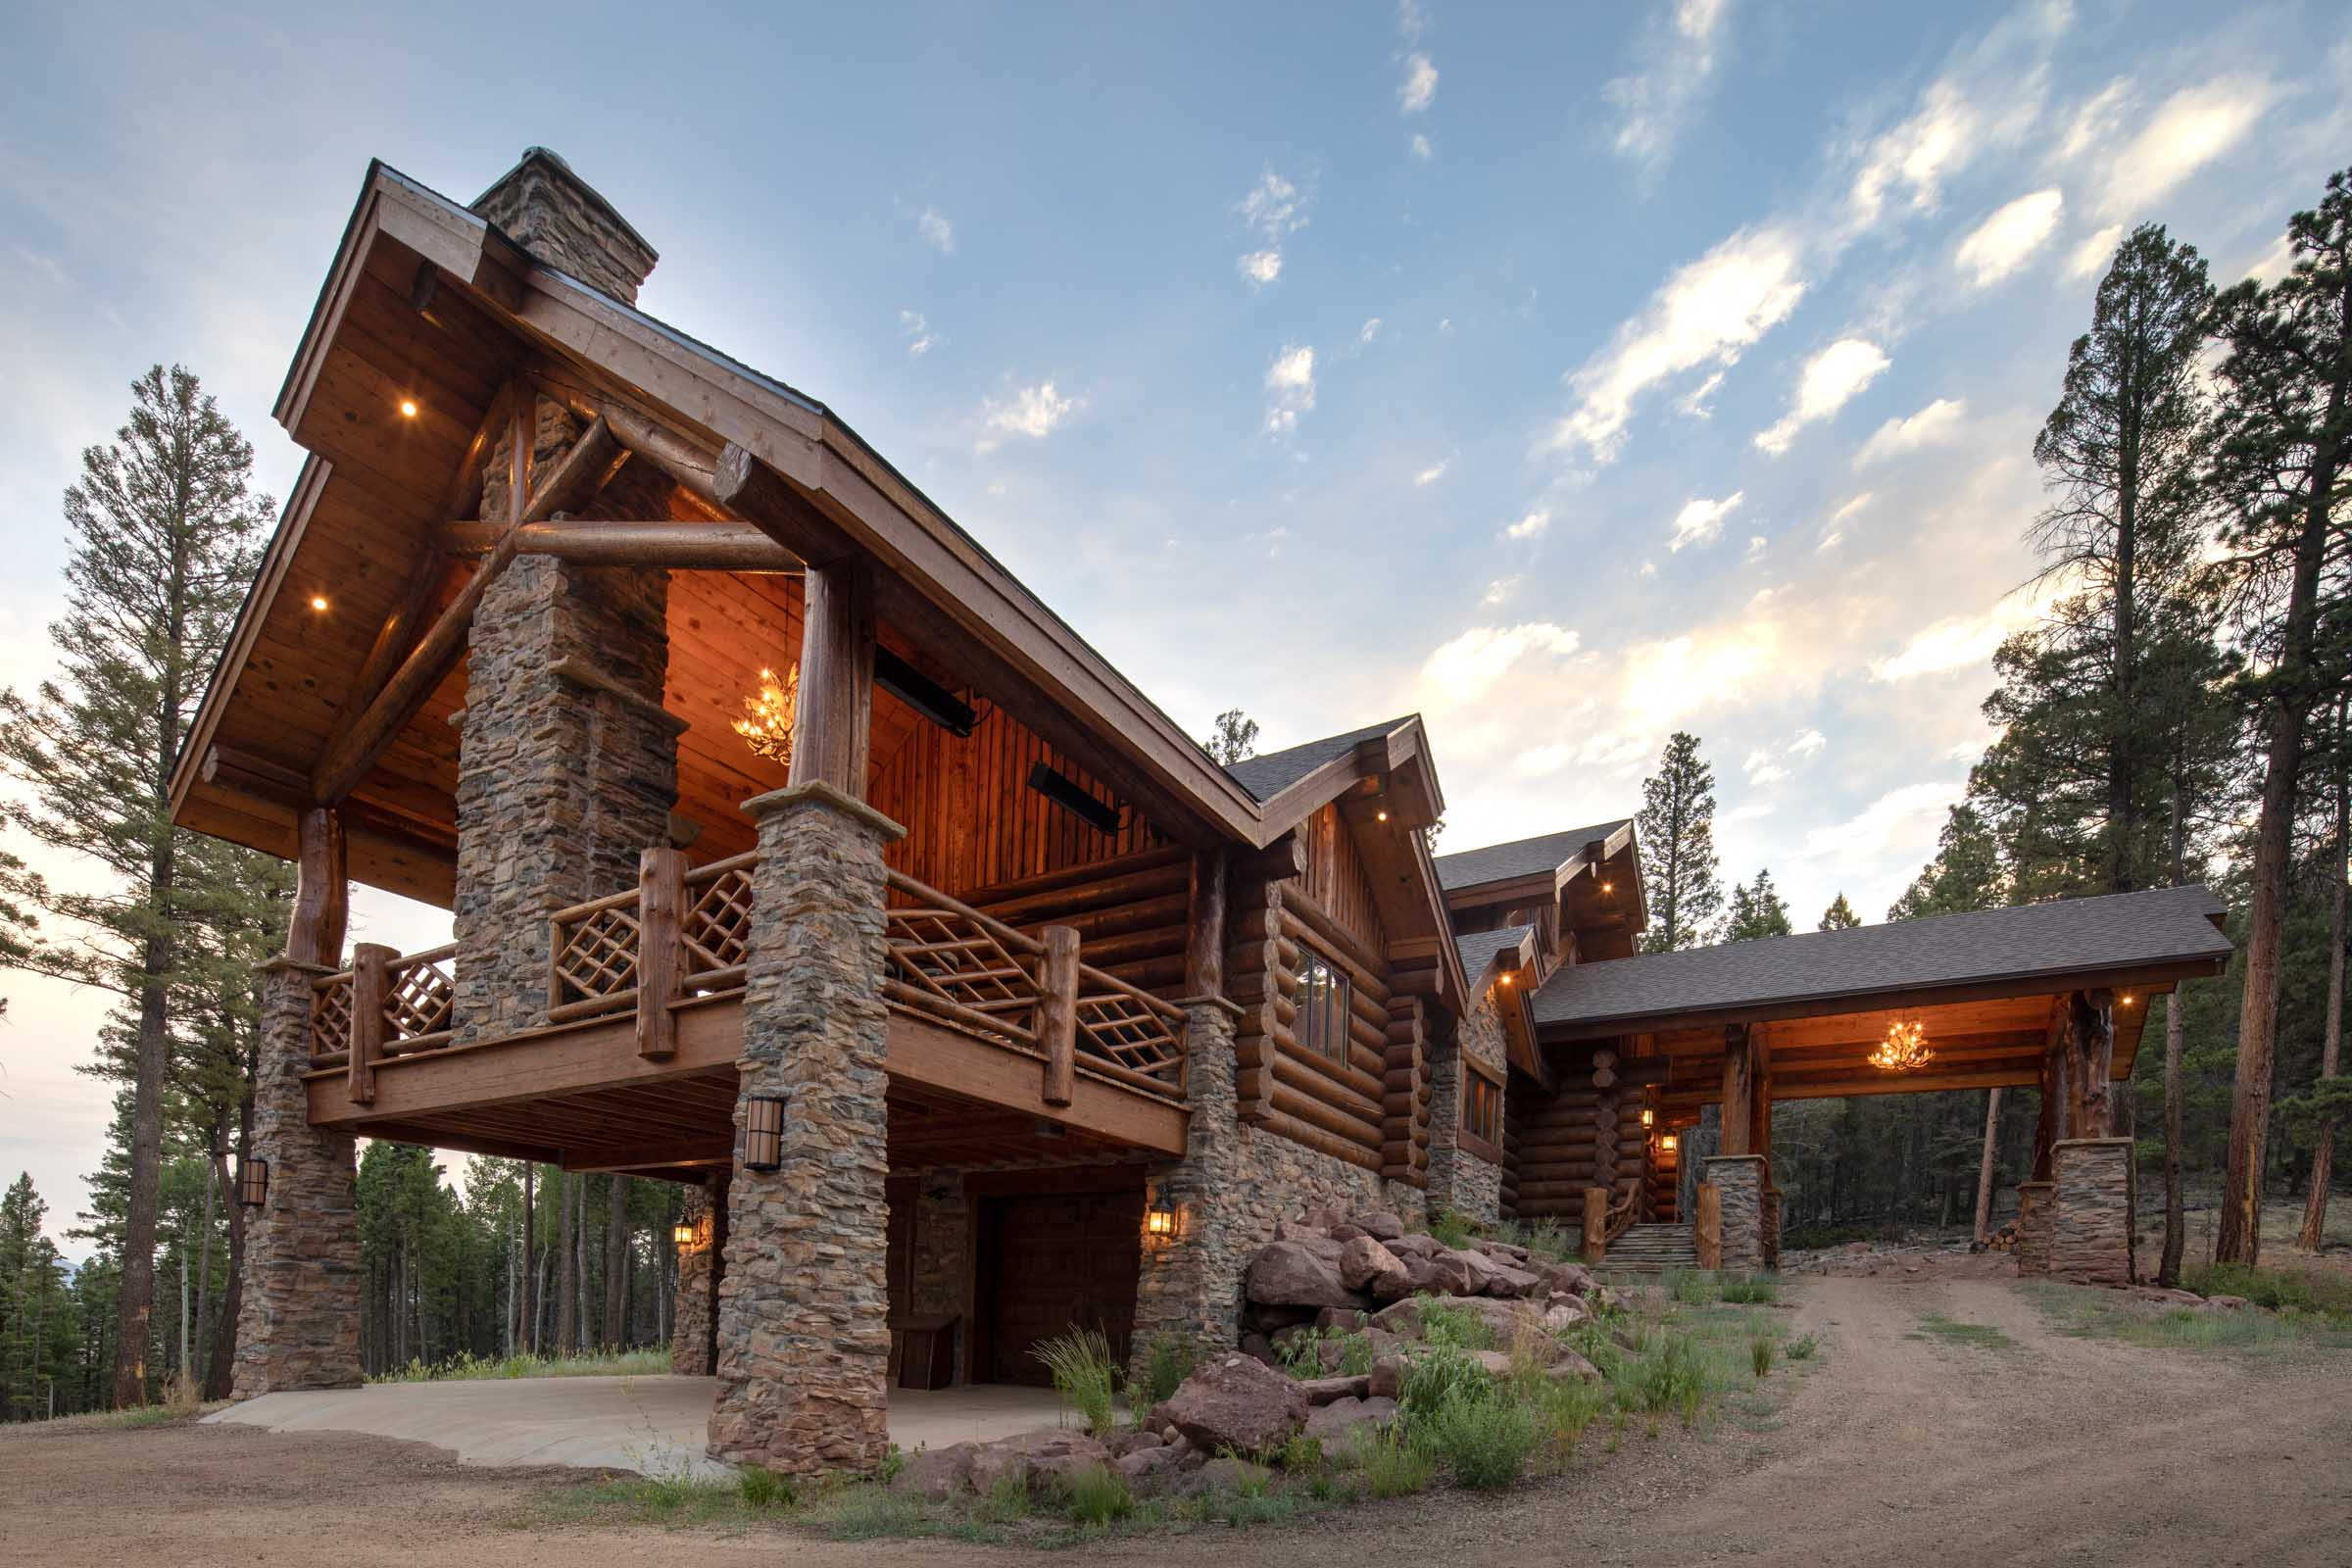 Luxury log cabin angel fire new mexico-7